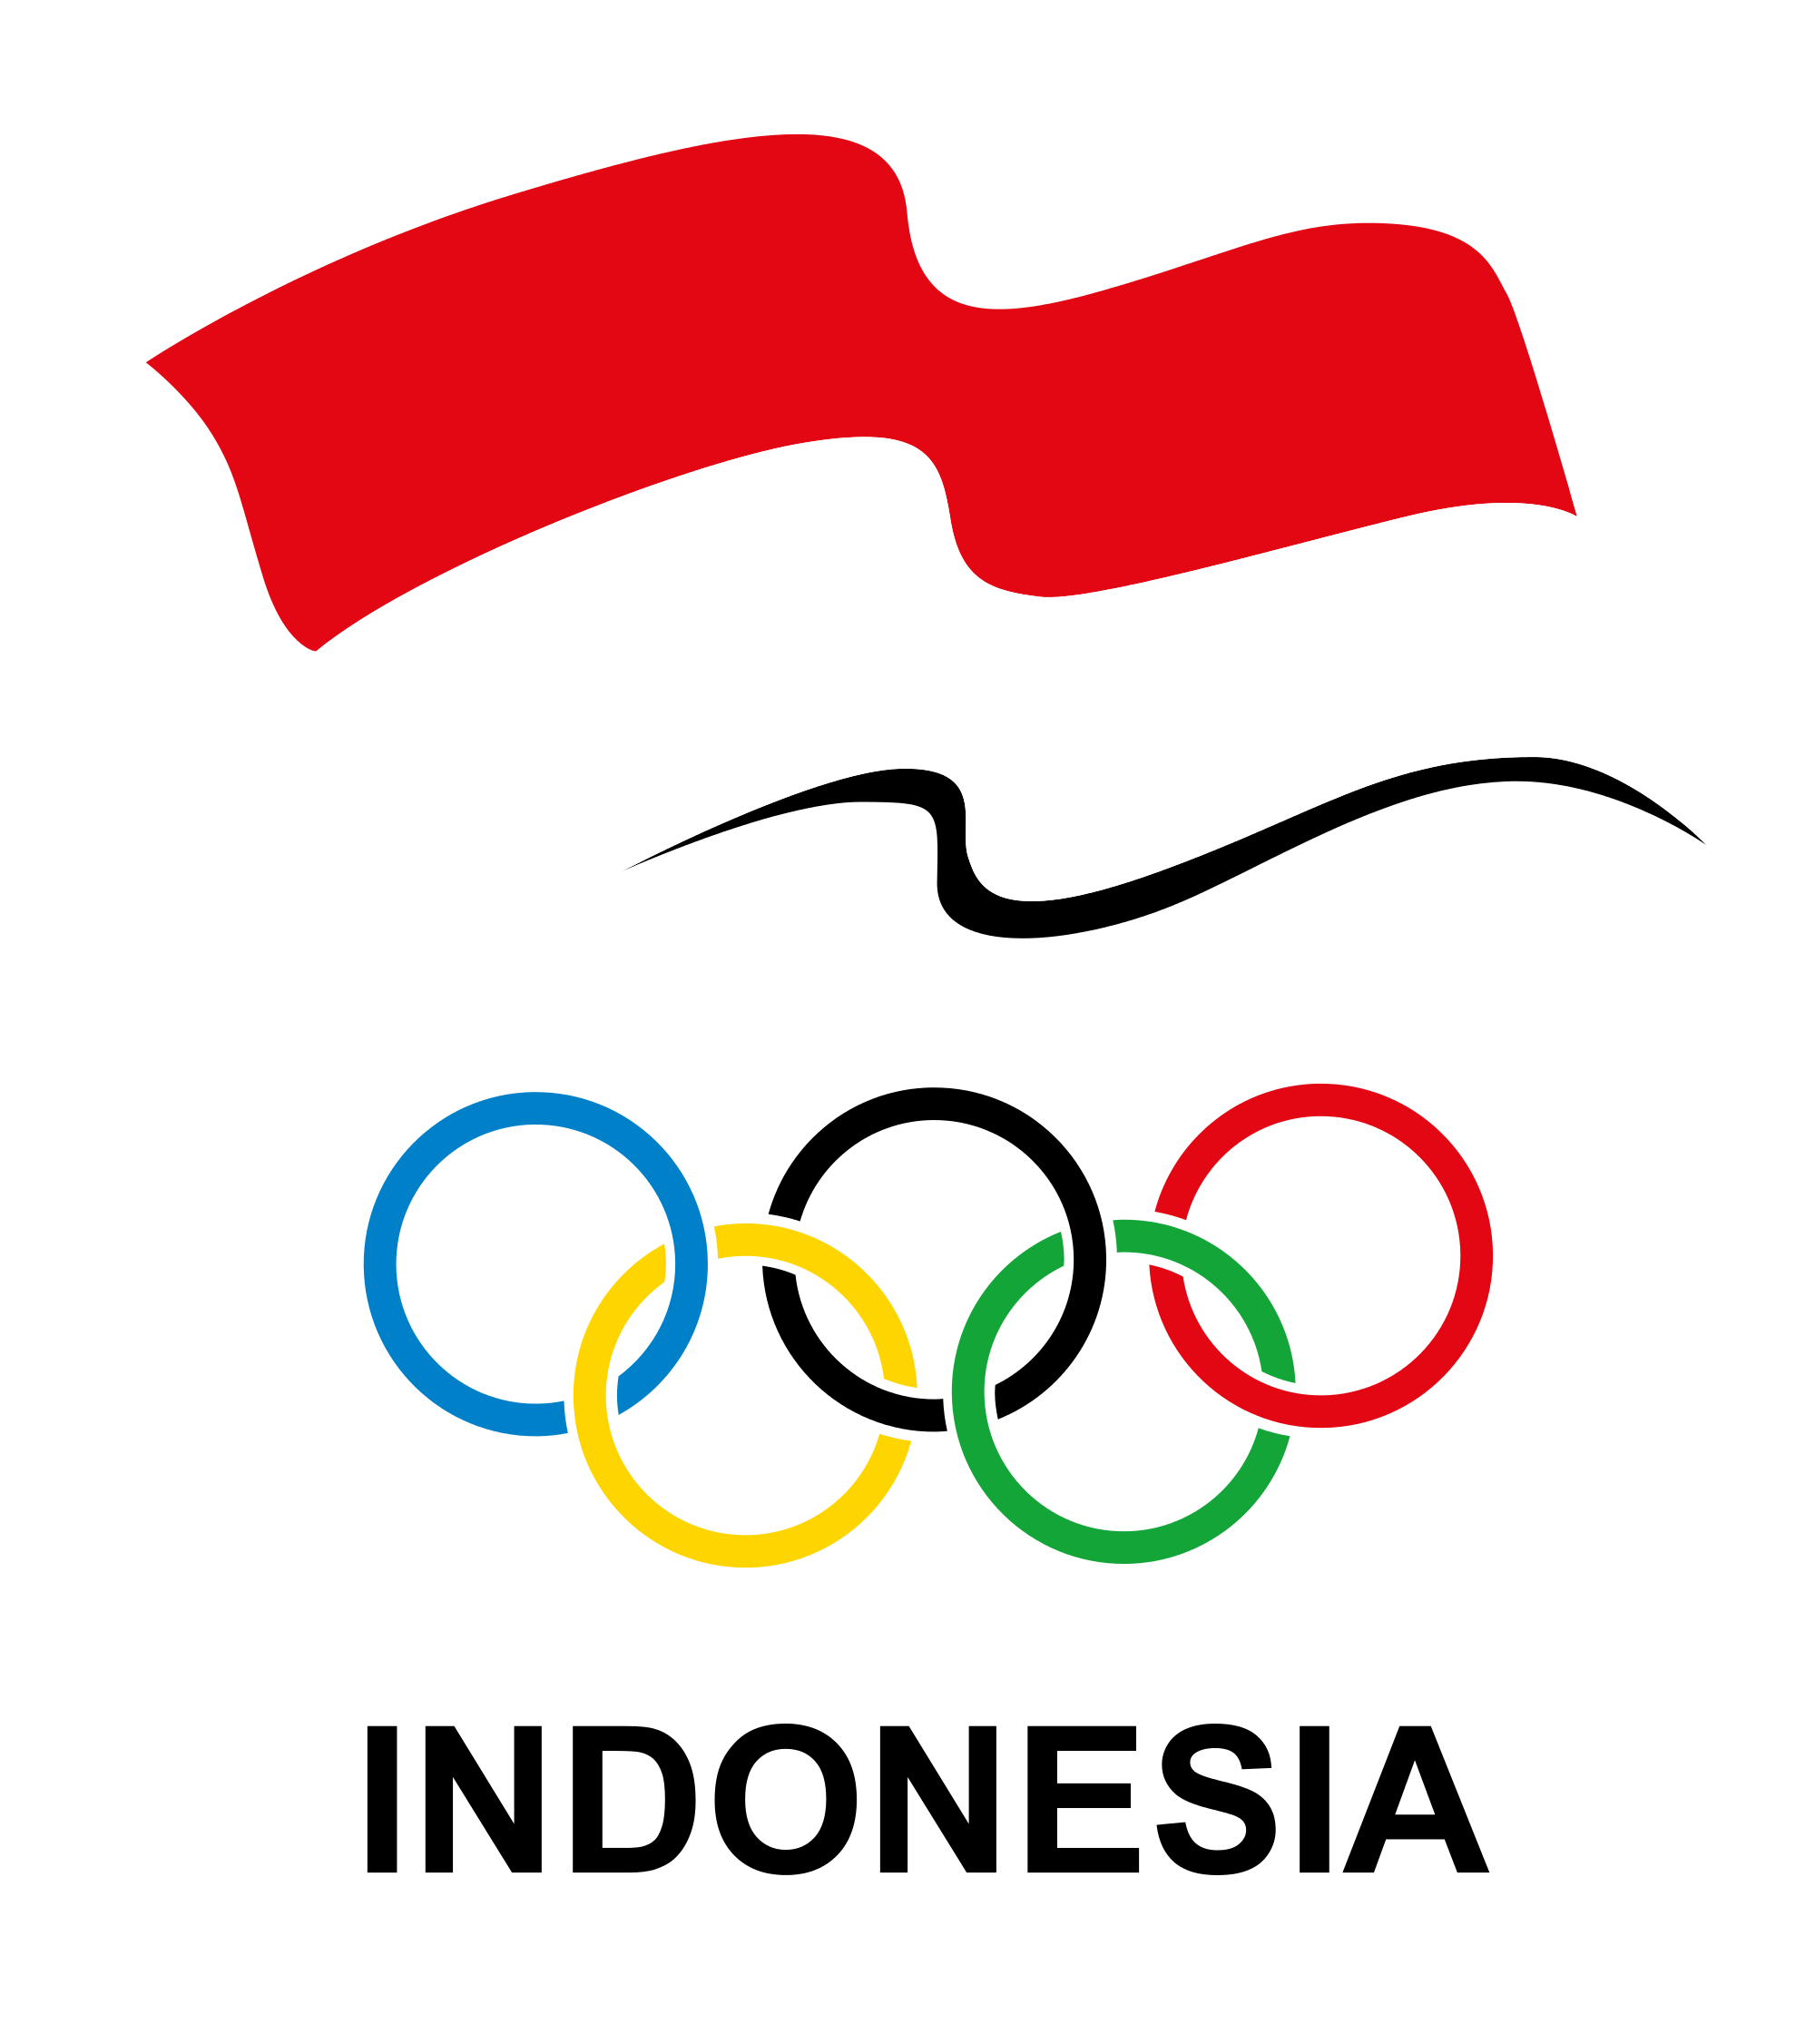 Olympic rings logo rio 2016 olympics logo designed by fred gelli - Indonesian Olympic Committee